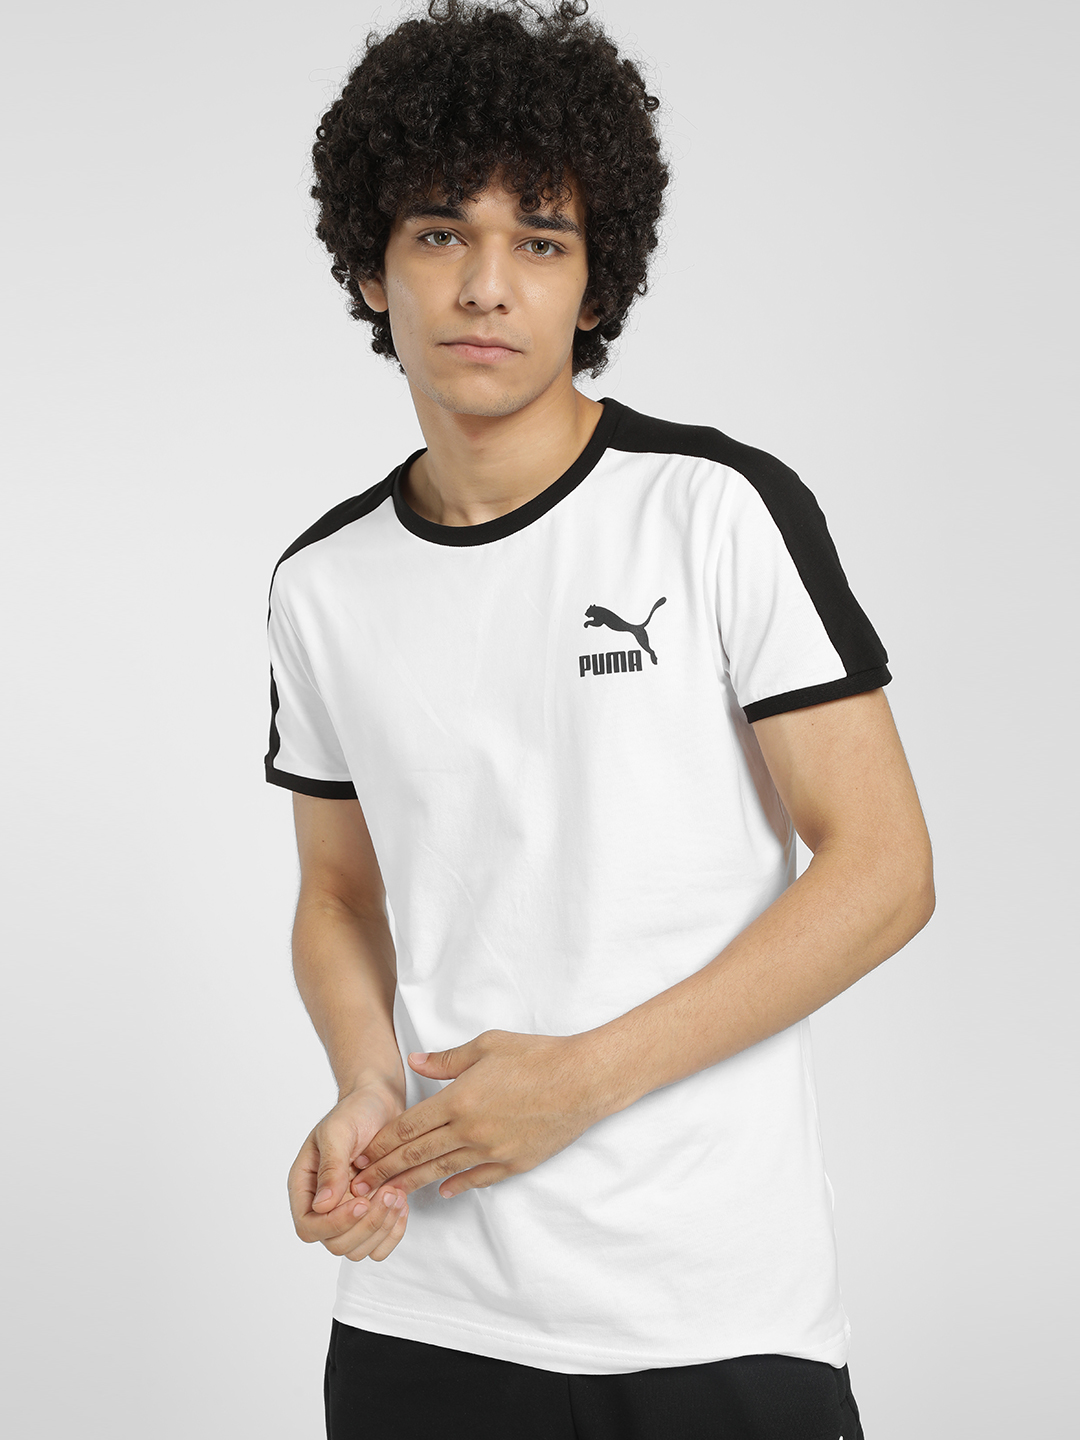 Puma White Contrast Shoulder Stripe T-Shirt 1